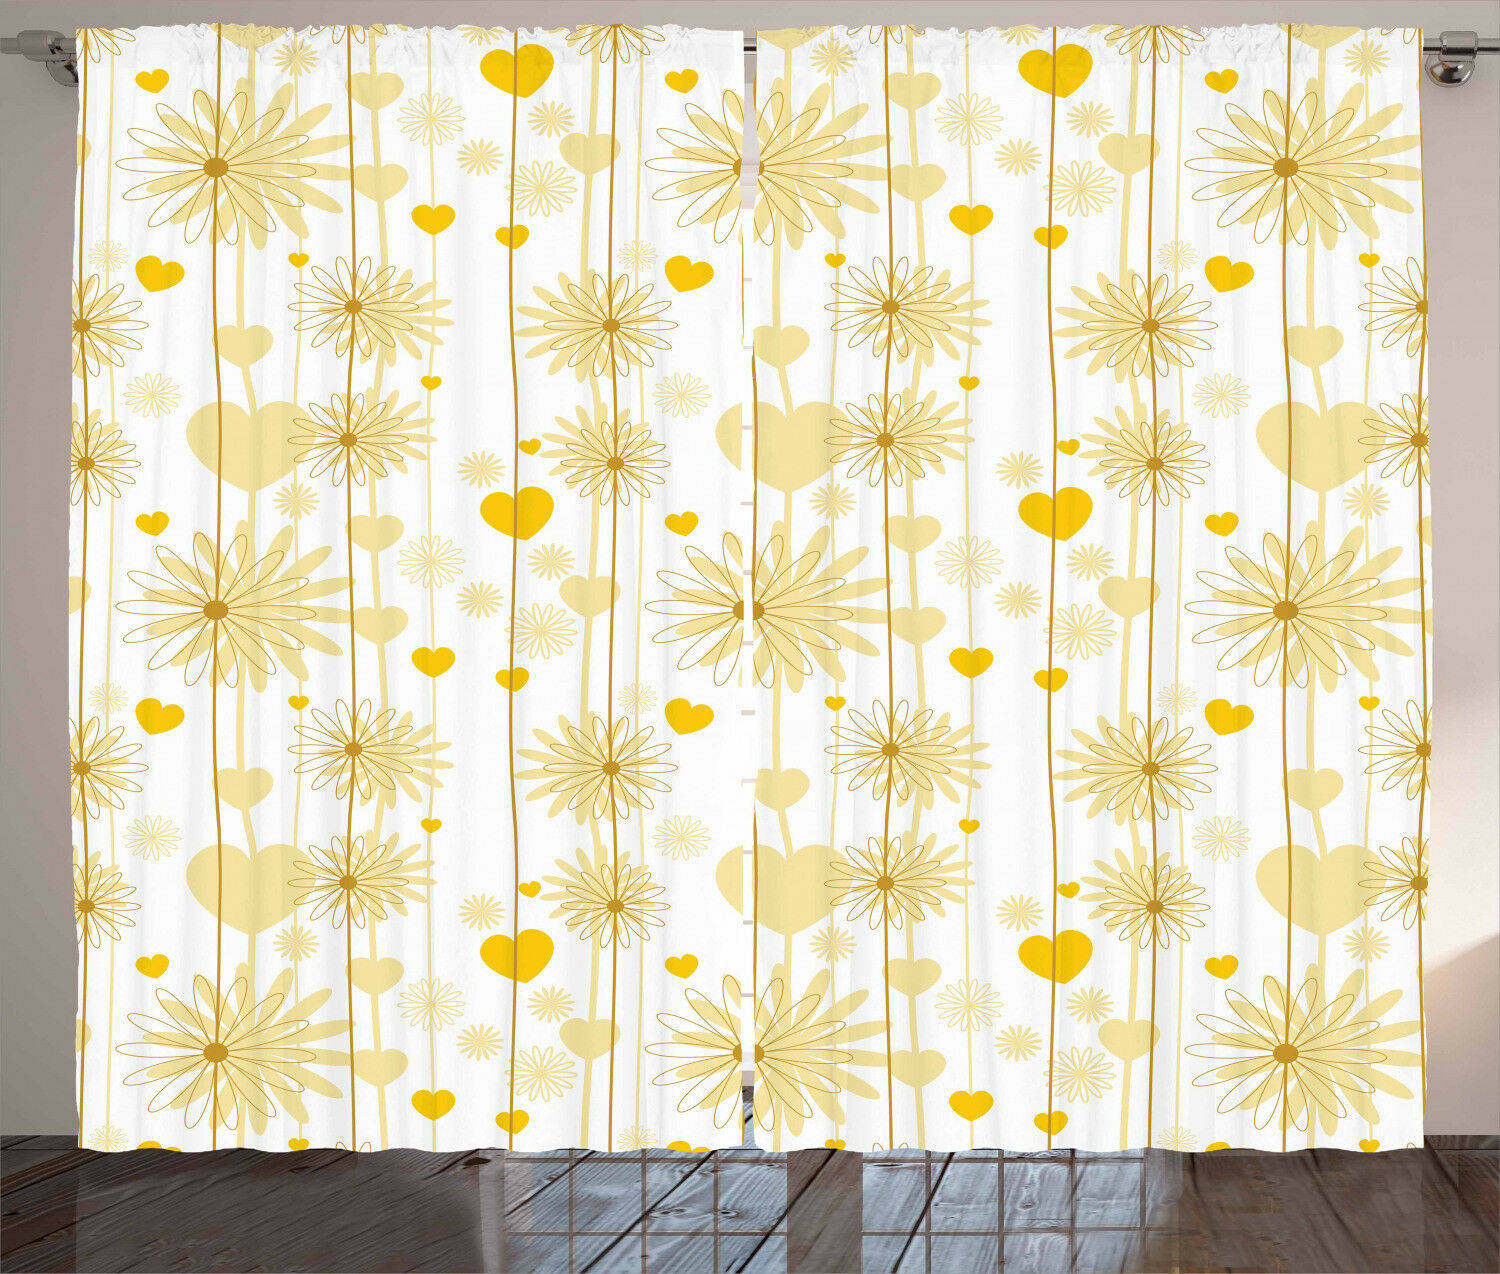 Gelb Curtains 2 Panel Panel Panel Set for Home Decor 5 Größes Available Window Drapes b72649